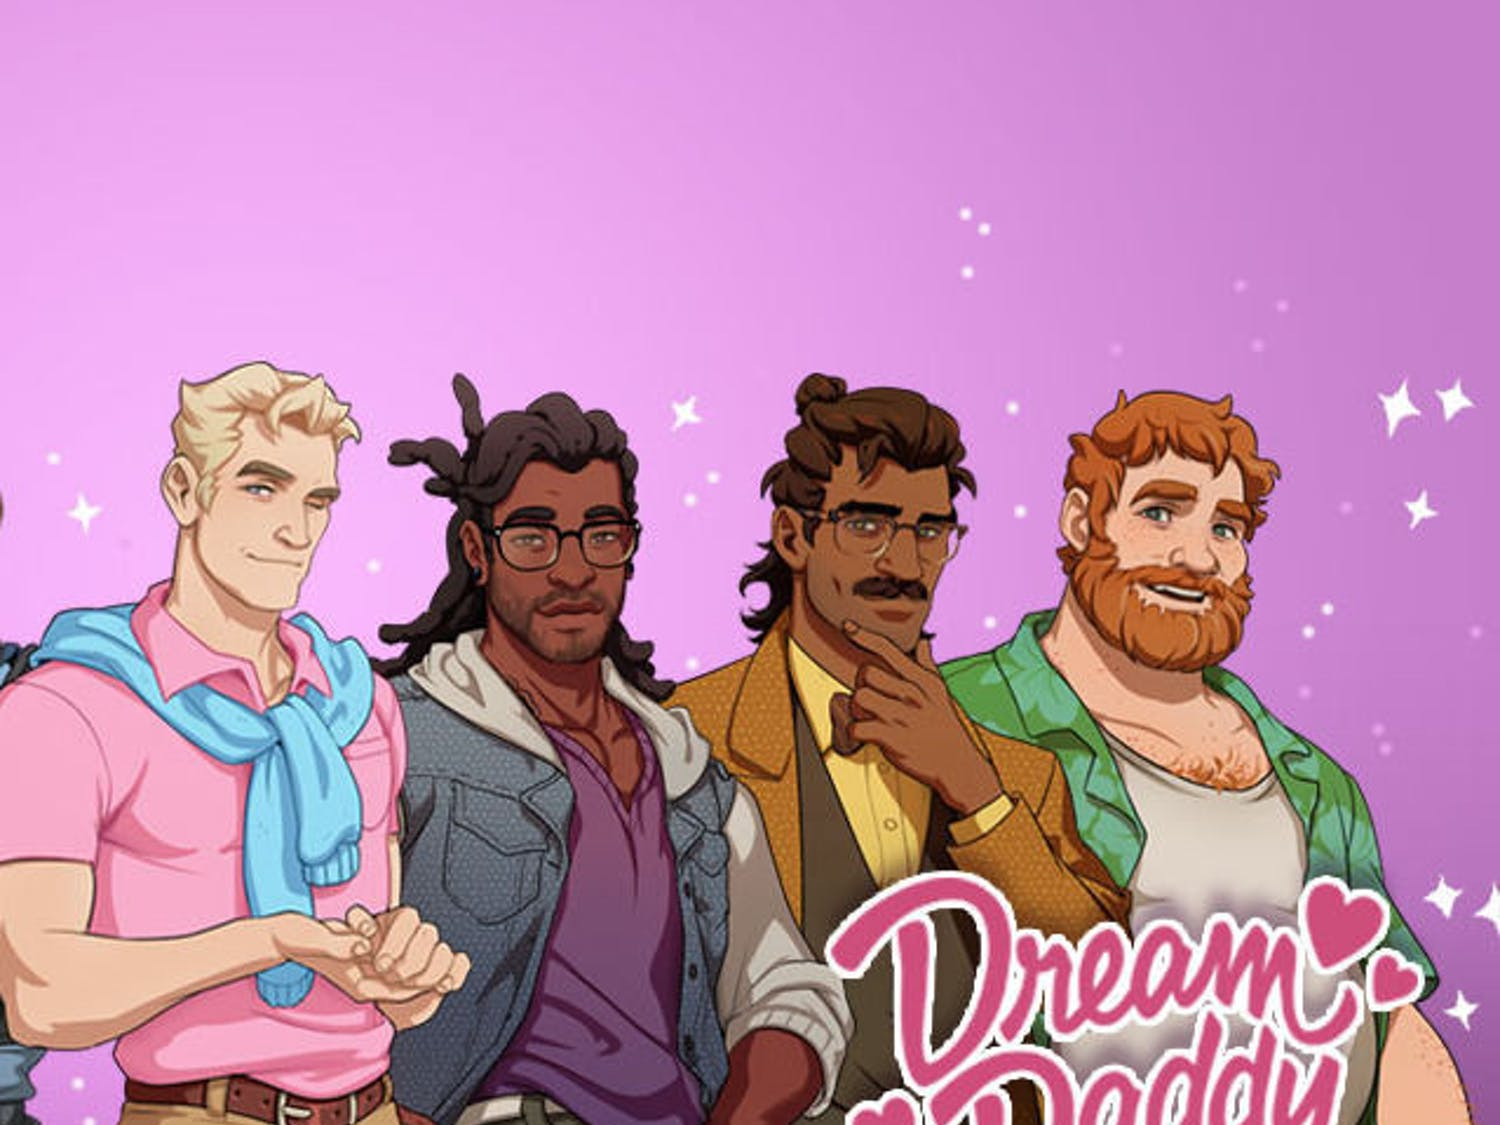 """Dream Daddy"" is our recommendation for anyone who enjoys dad bods and jokes."